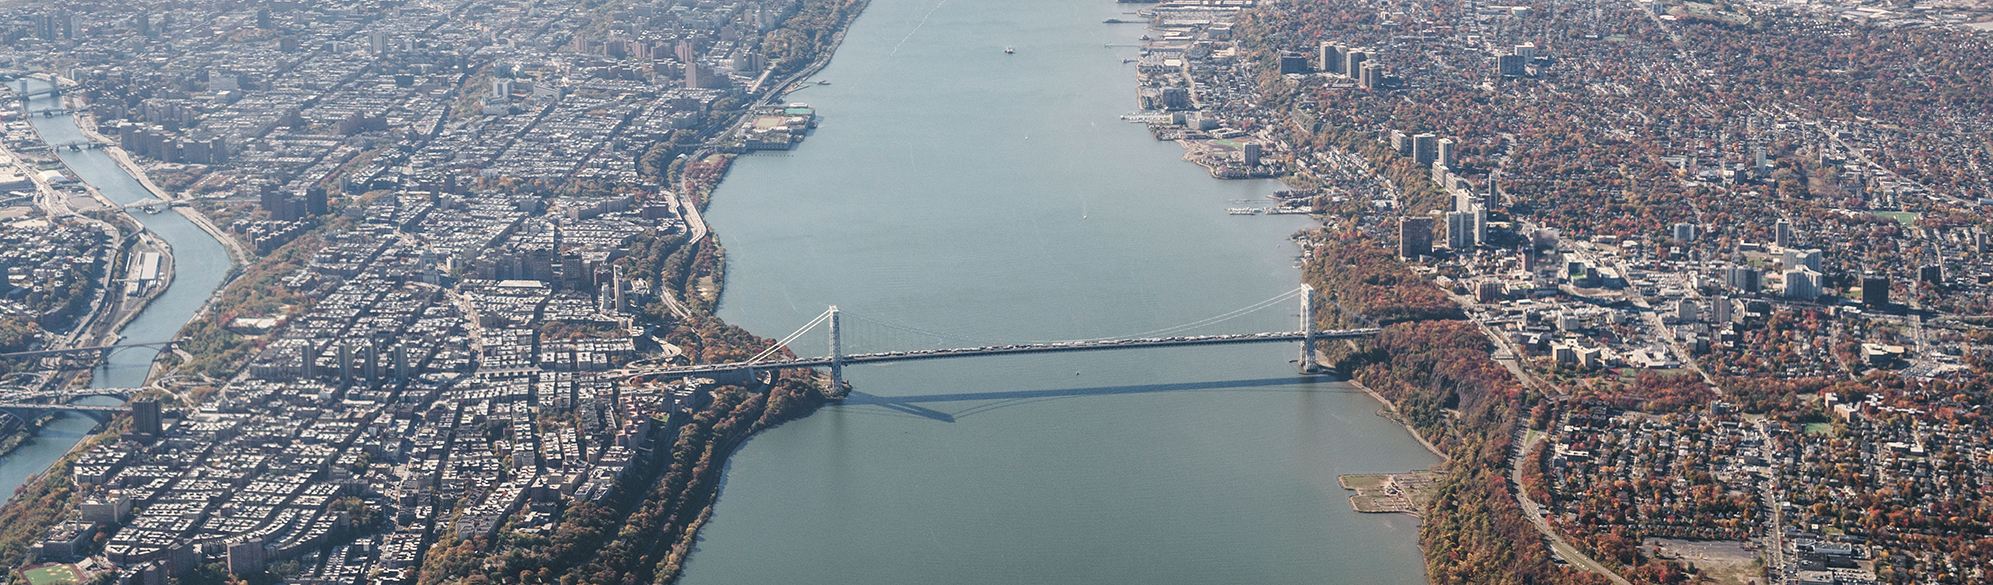 Aerial photo of Palisades Park